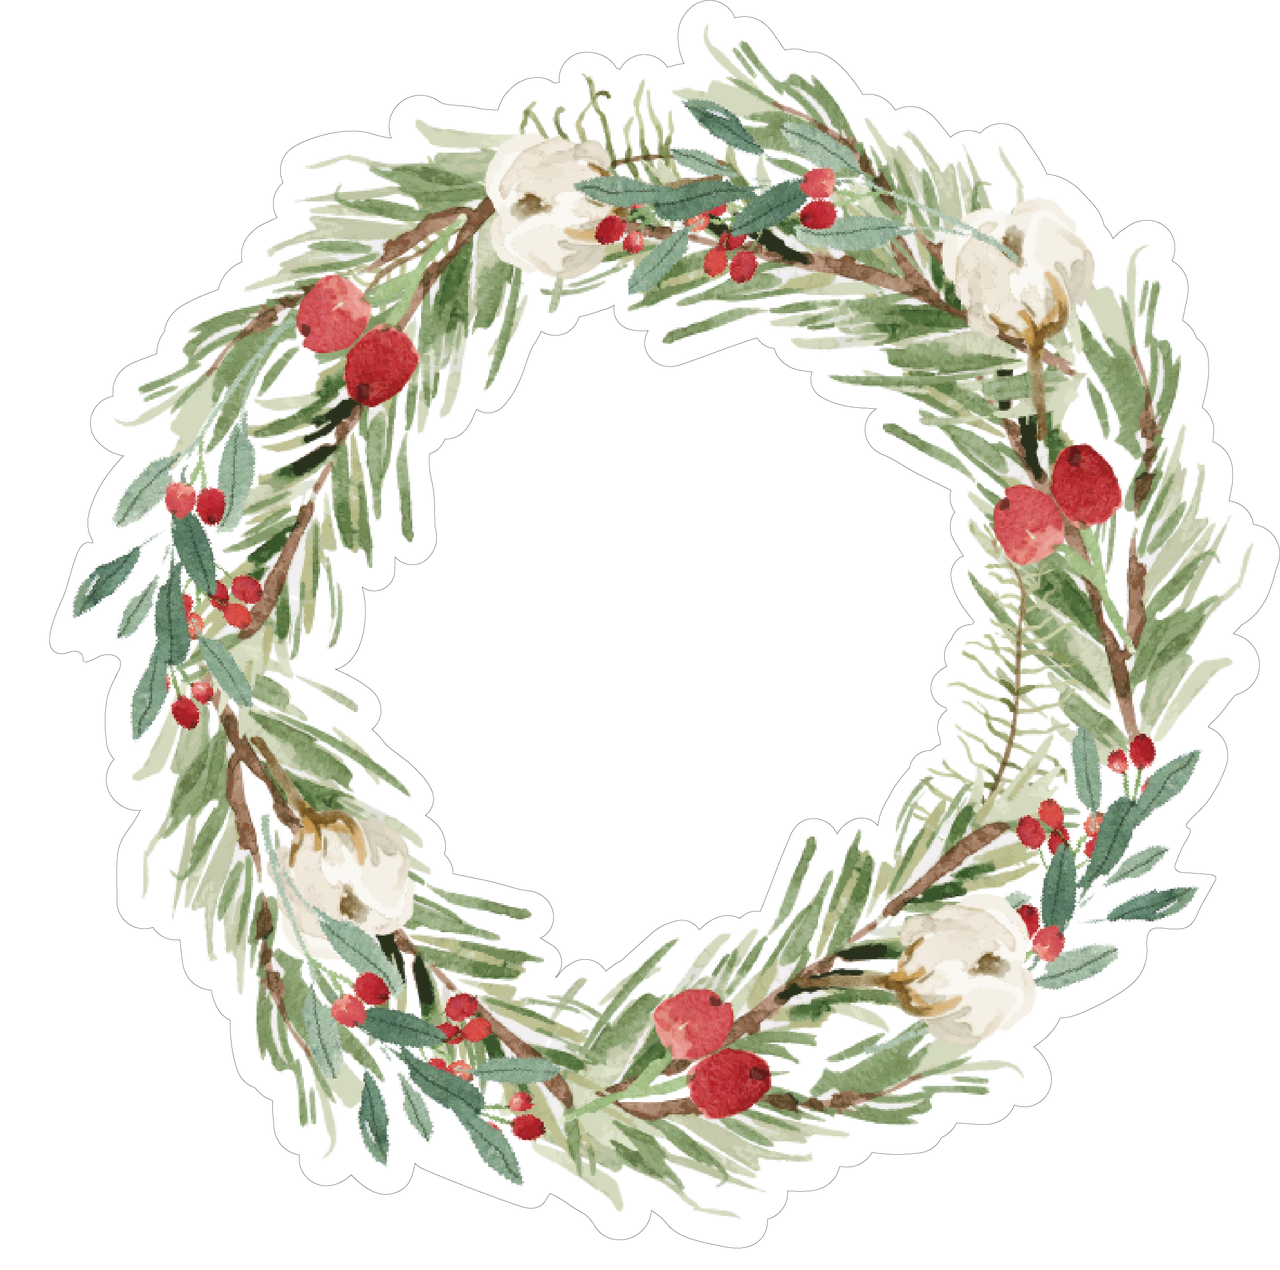 Christmas Wreath Print & Cut File - Snap Click Supply Co.